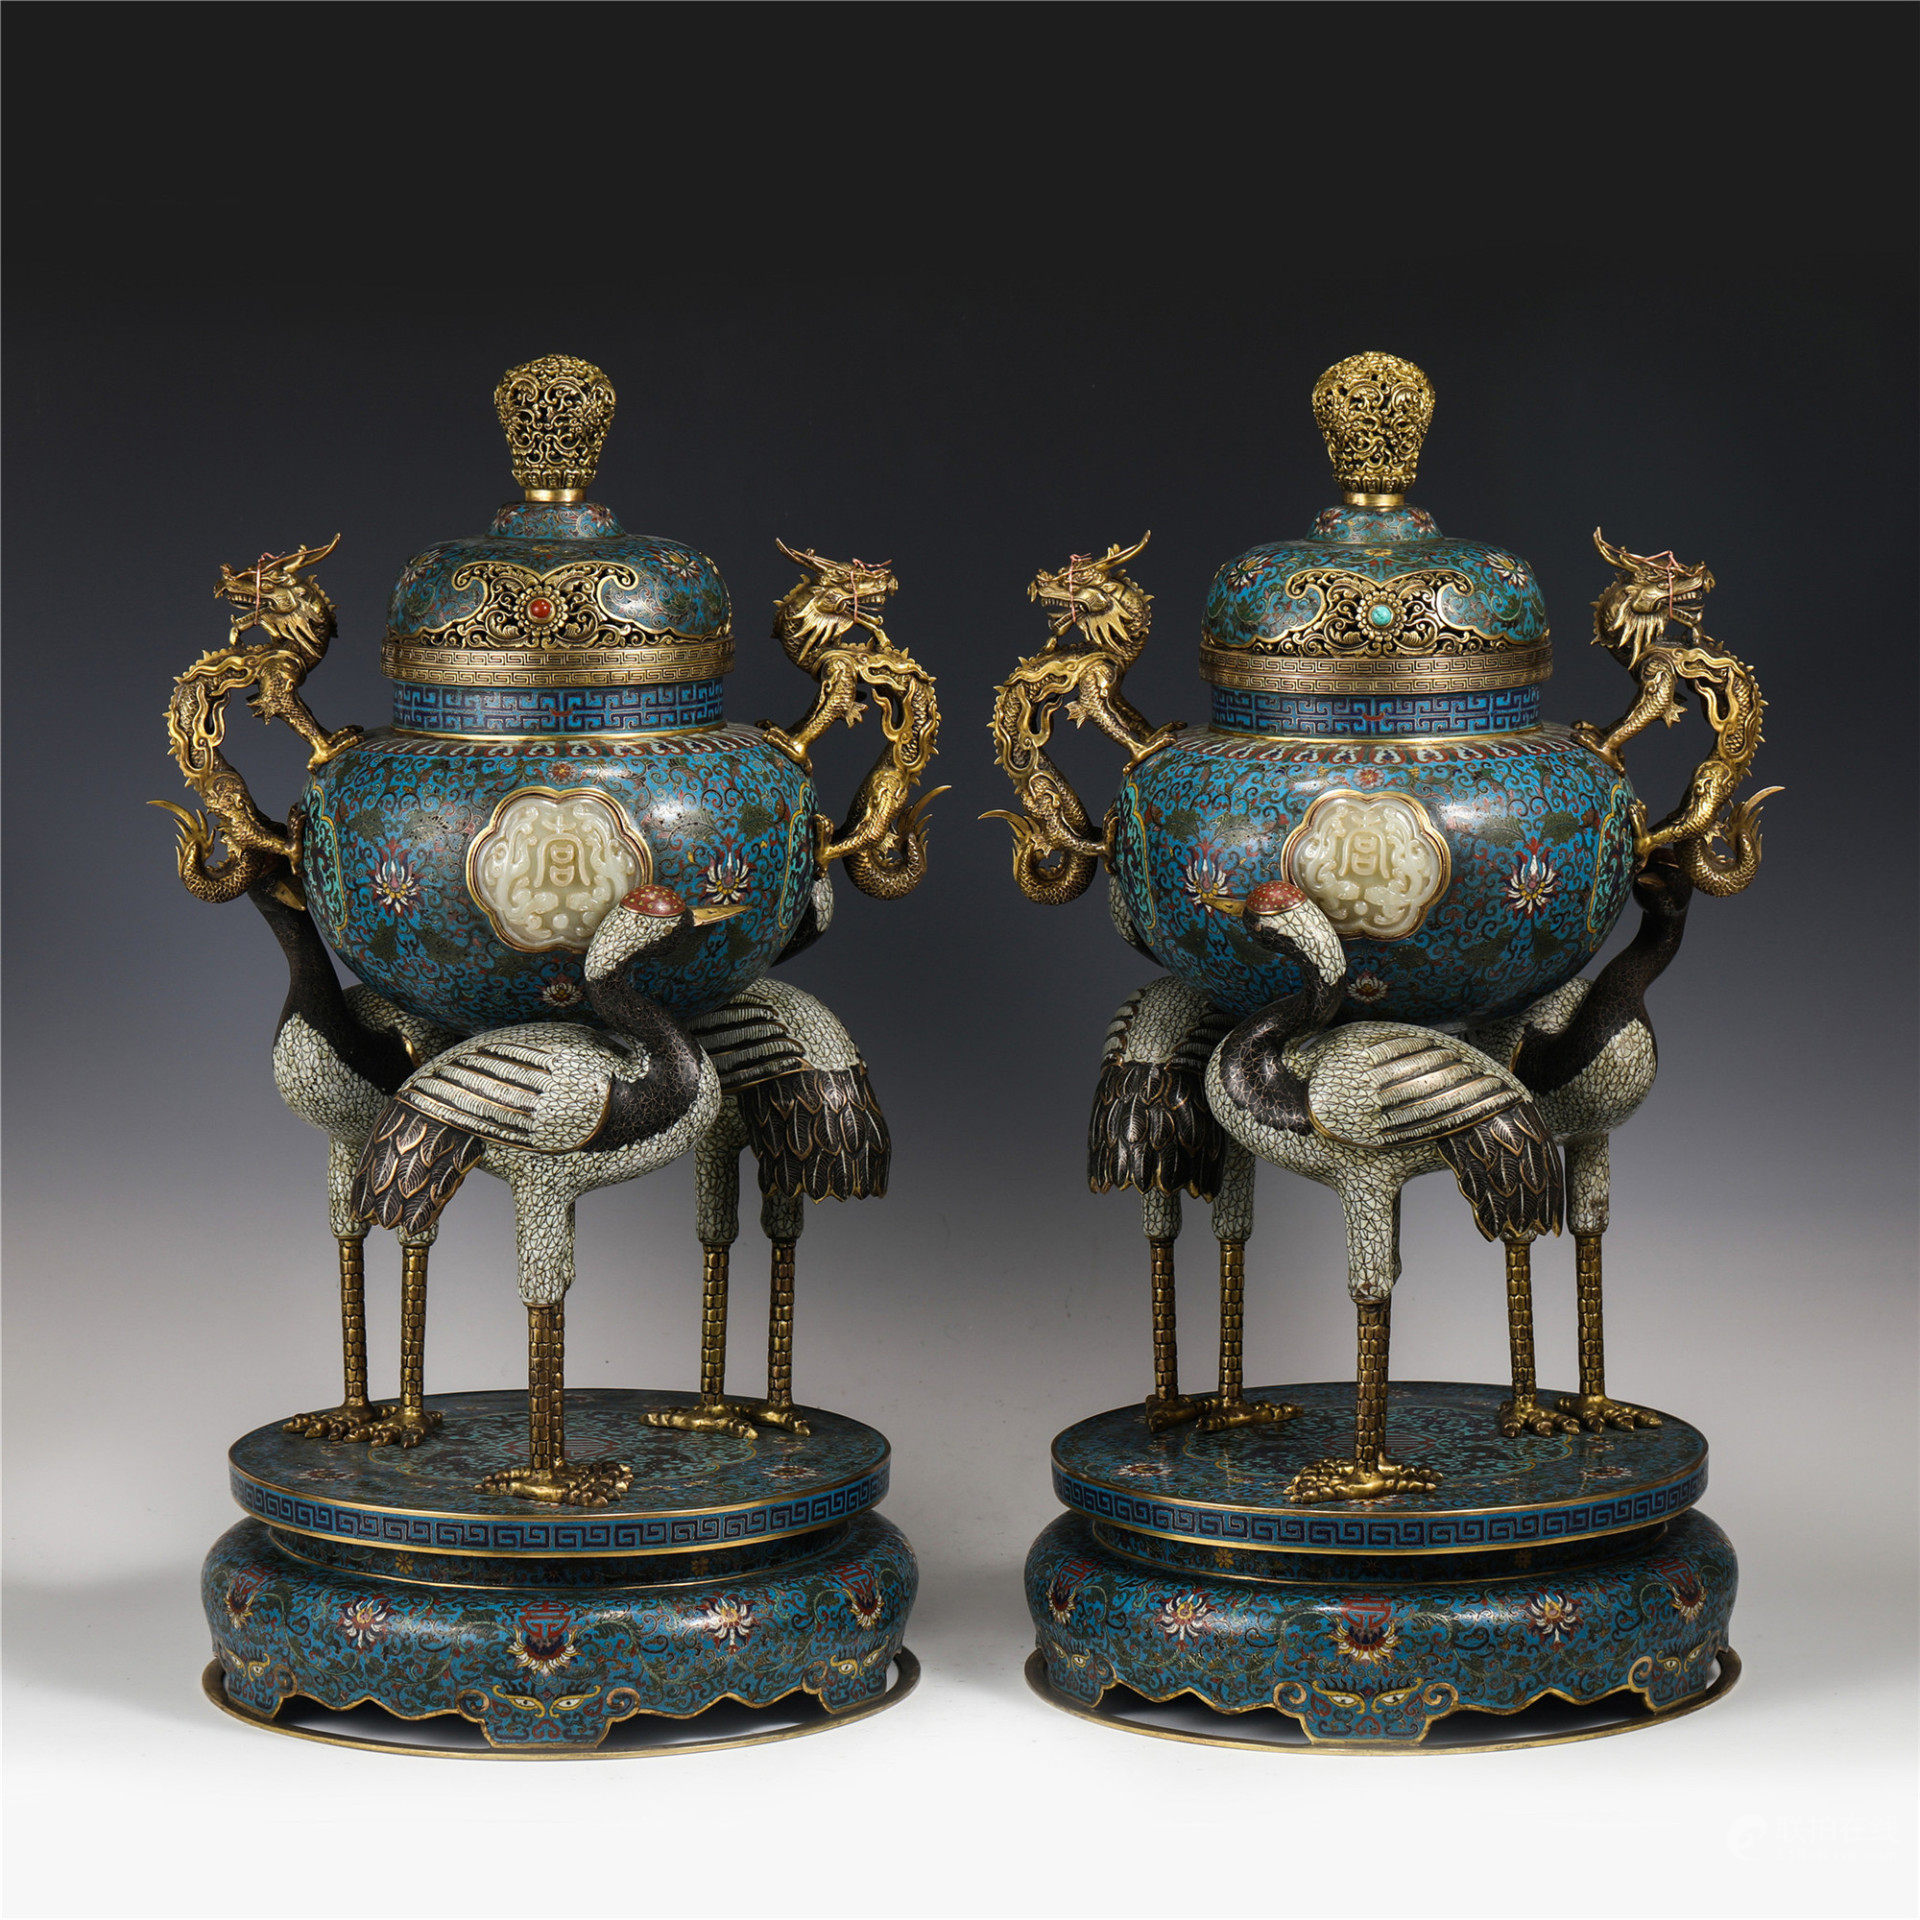 A PAIR OF CHINESE CLOISONNE CENSERS WITH BOTTOM